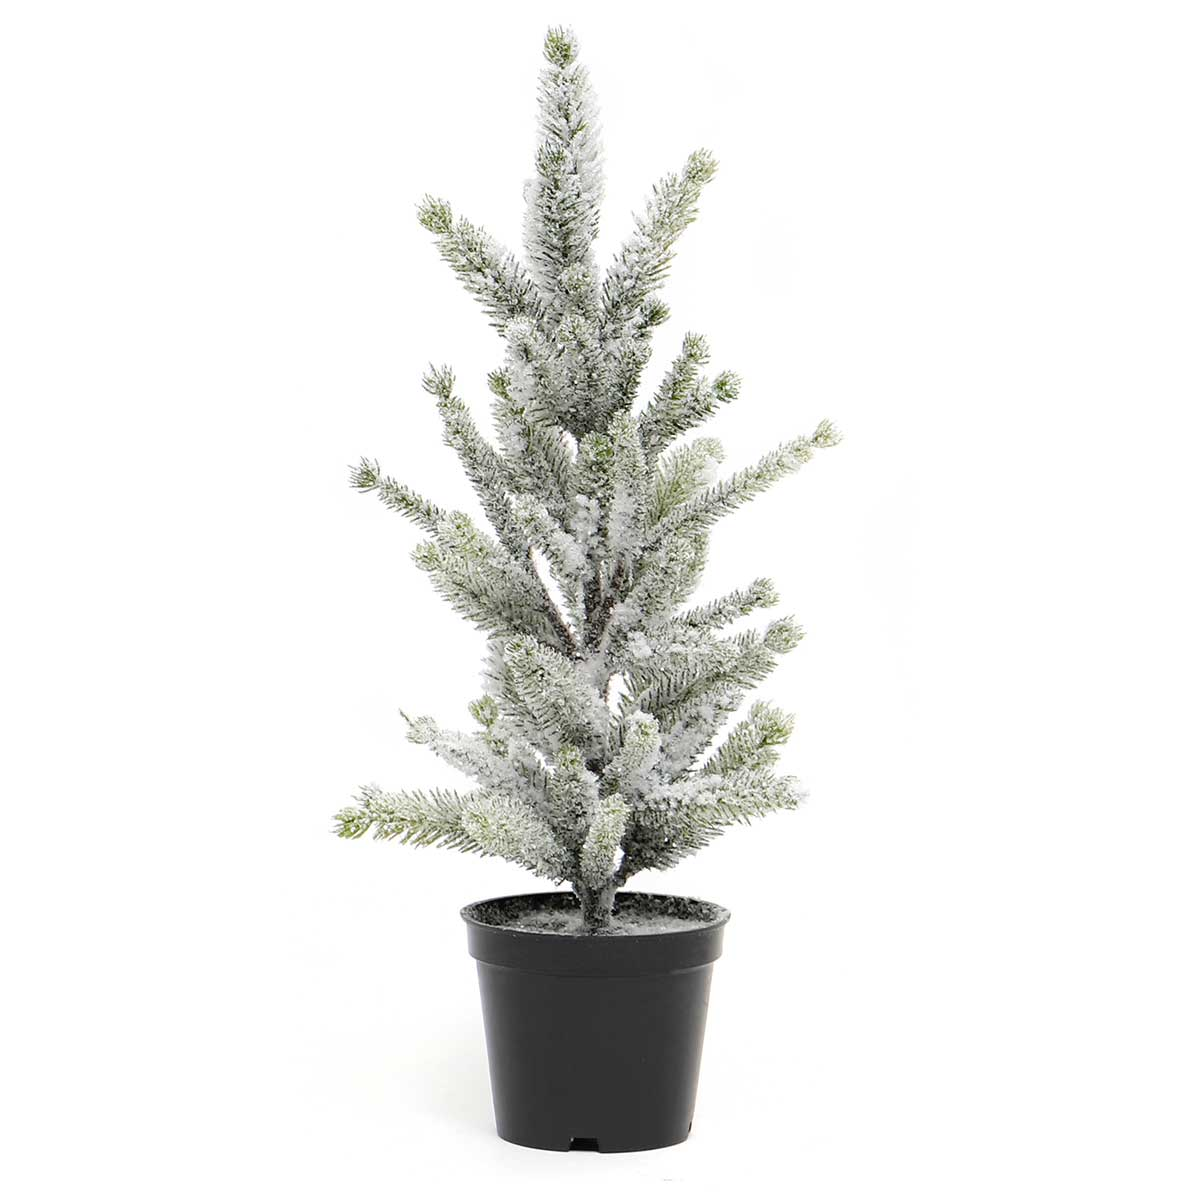 "FIR SPRUCE TREE WITH SNOW 5""X13.5""IN BLACK PLASTIC POT"